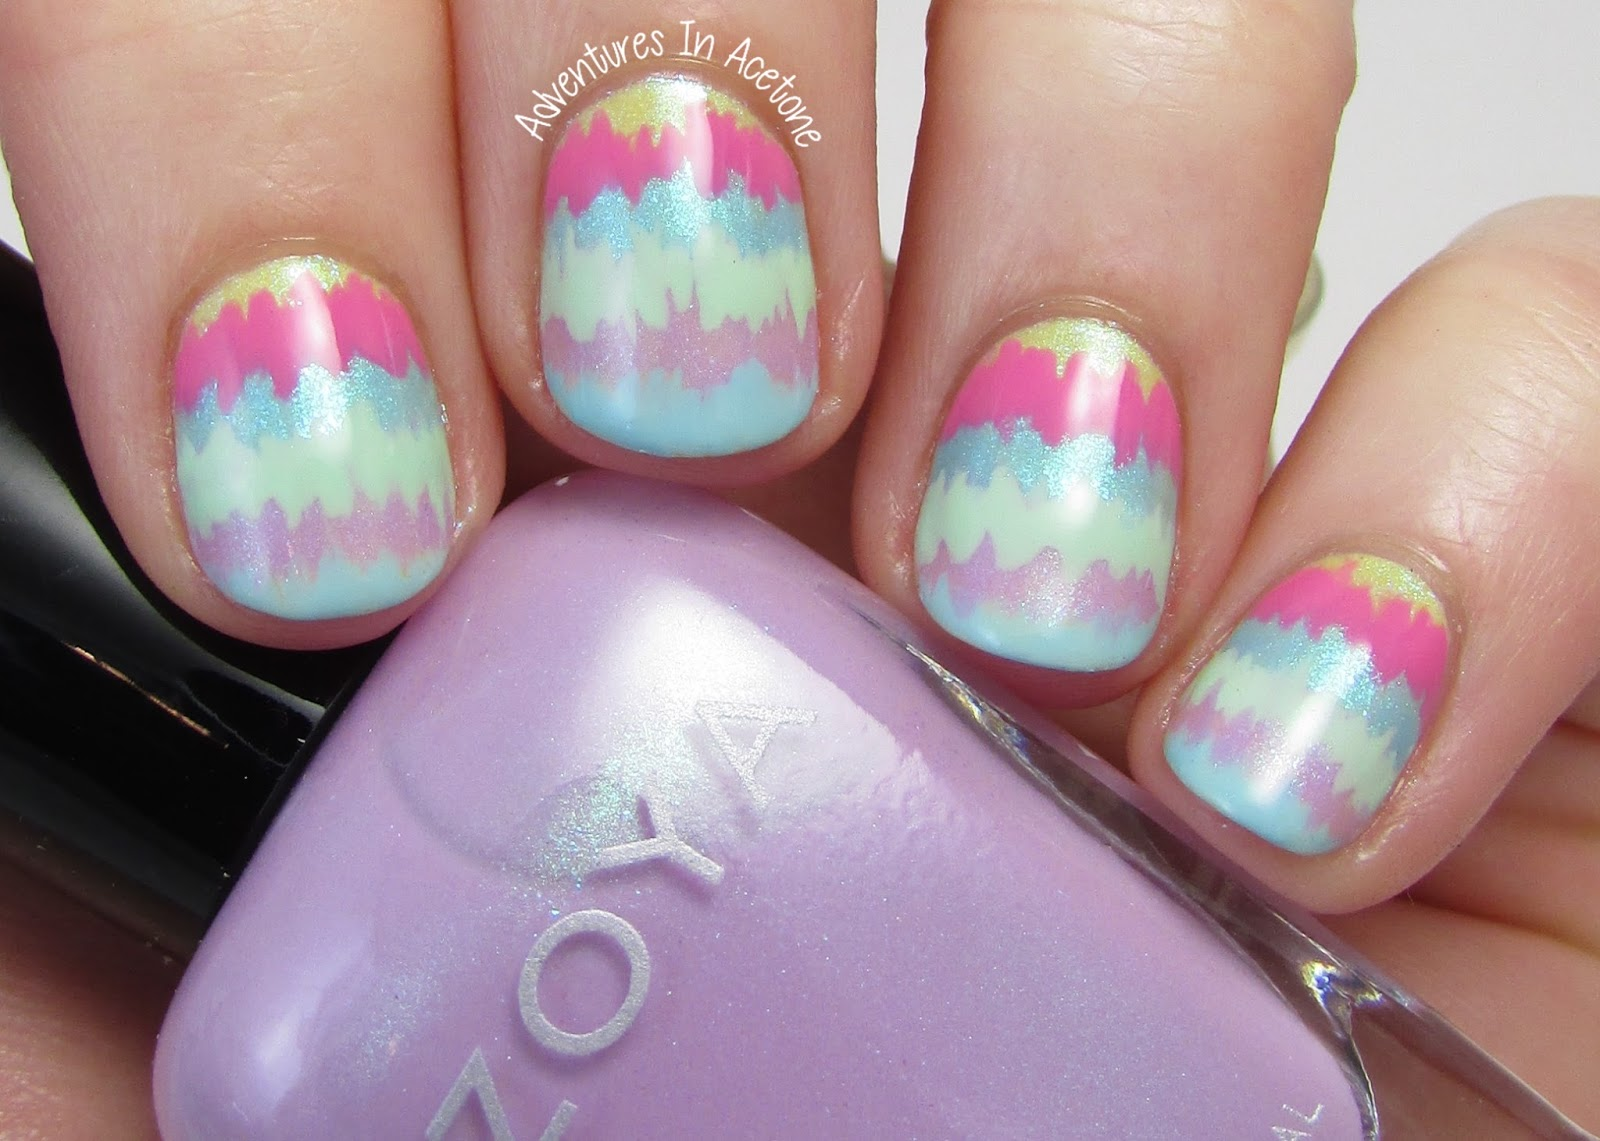 13 Day of January Nail Art Challenge Archives - Adventures In Acetone